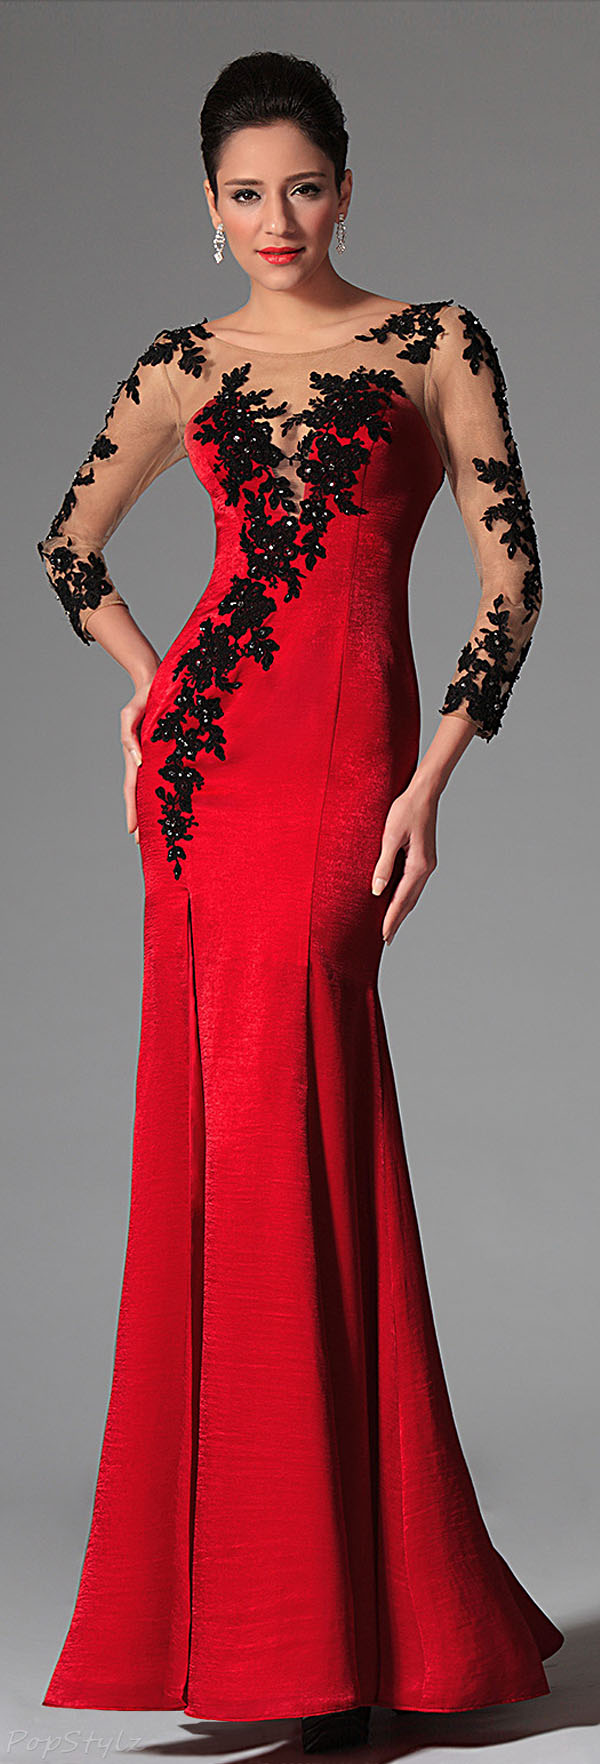 eDressit 02146302 Lacy Velvet Evening Gown